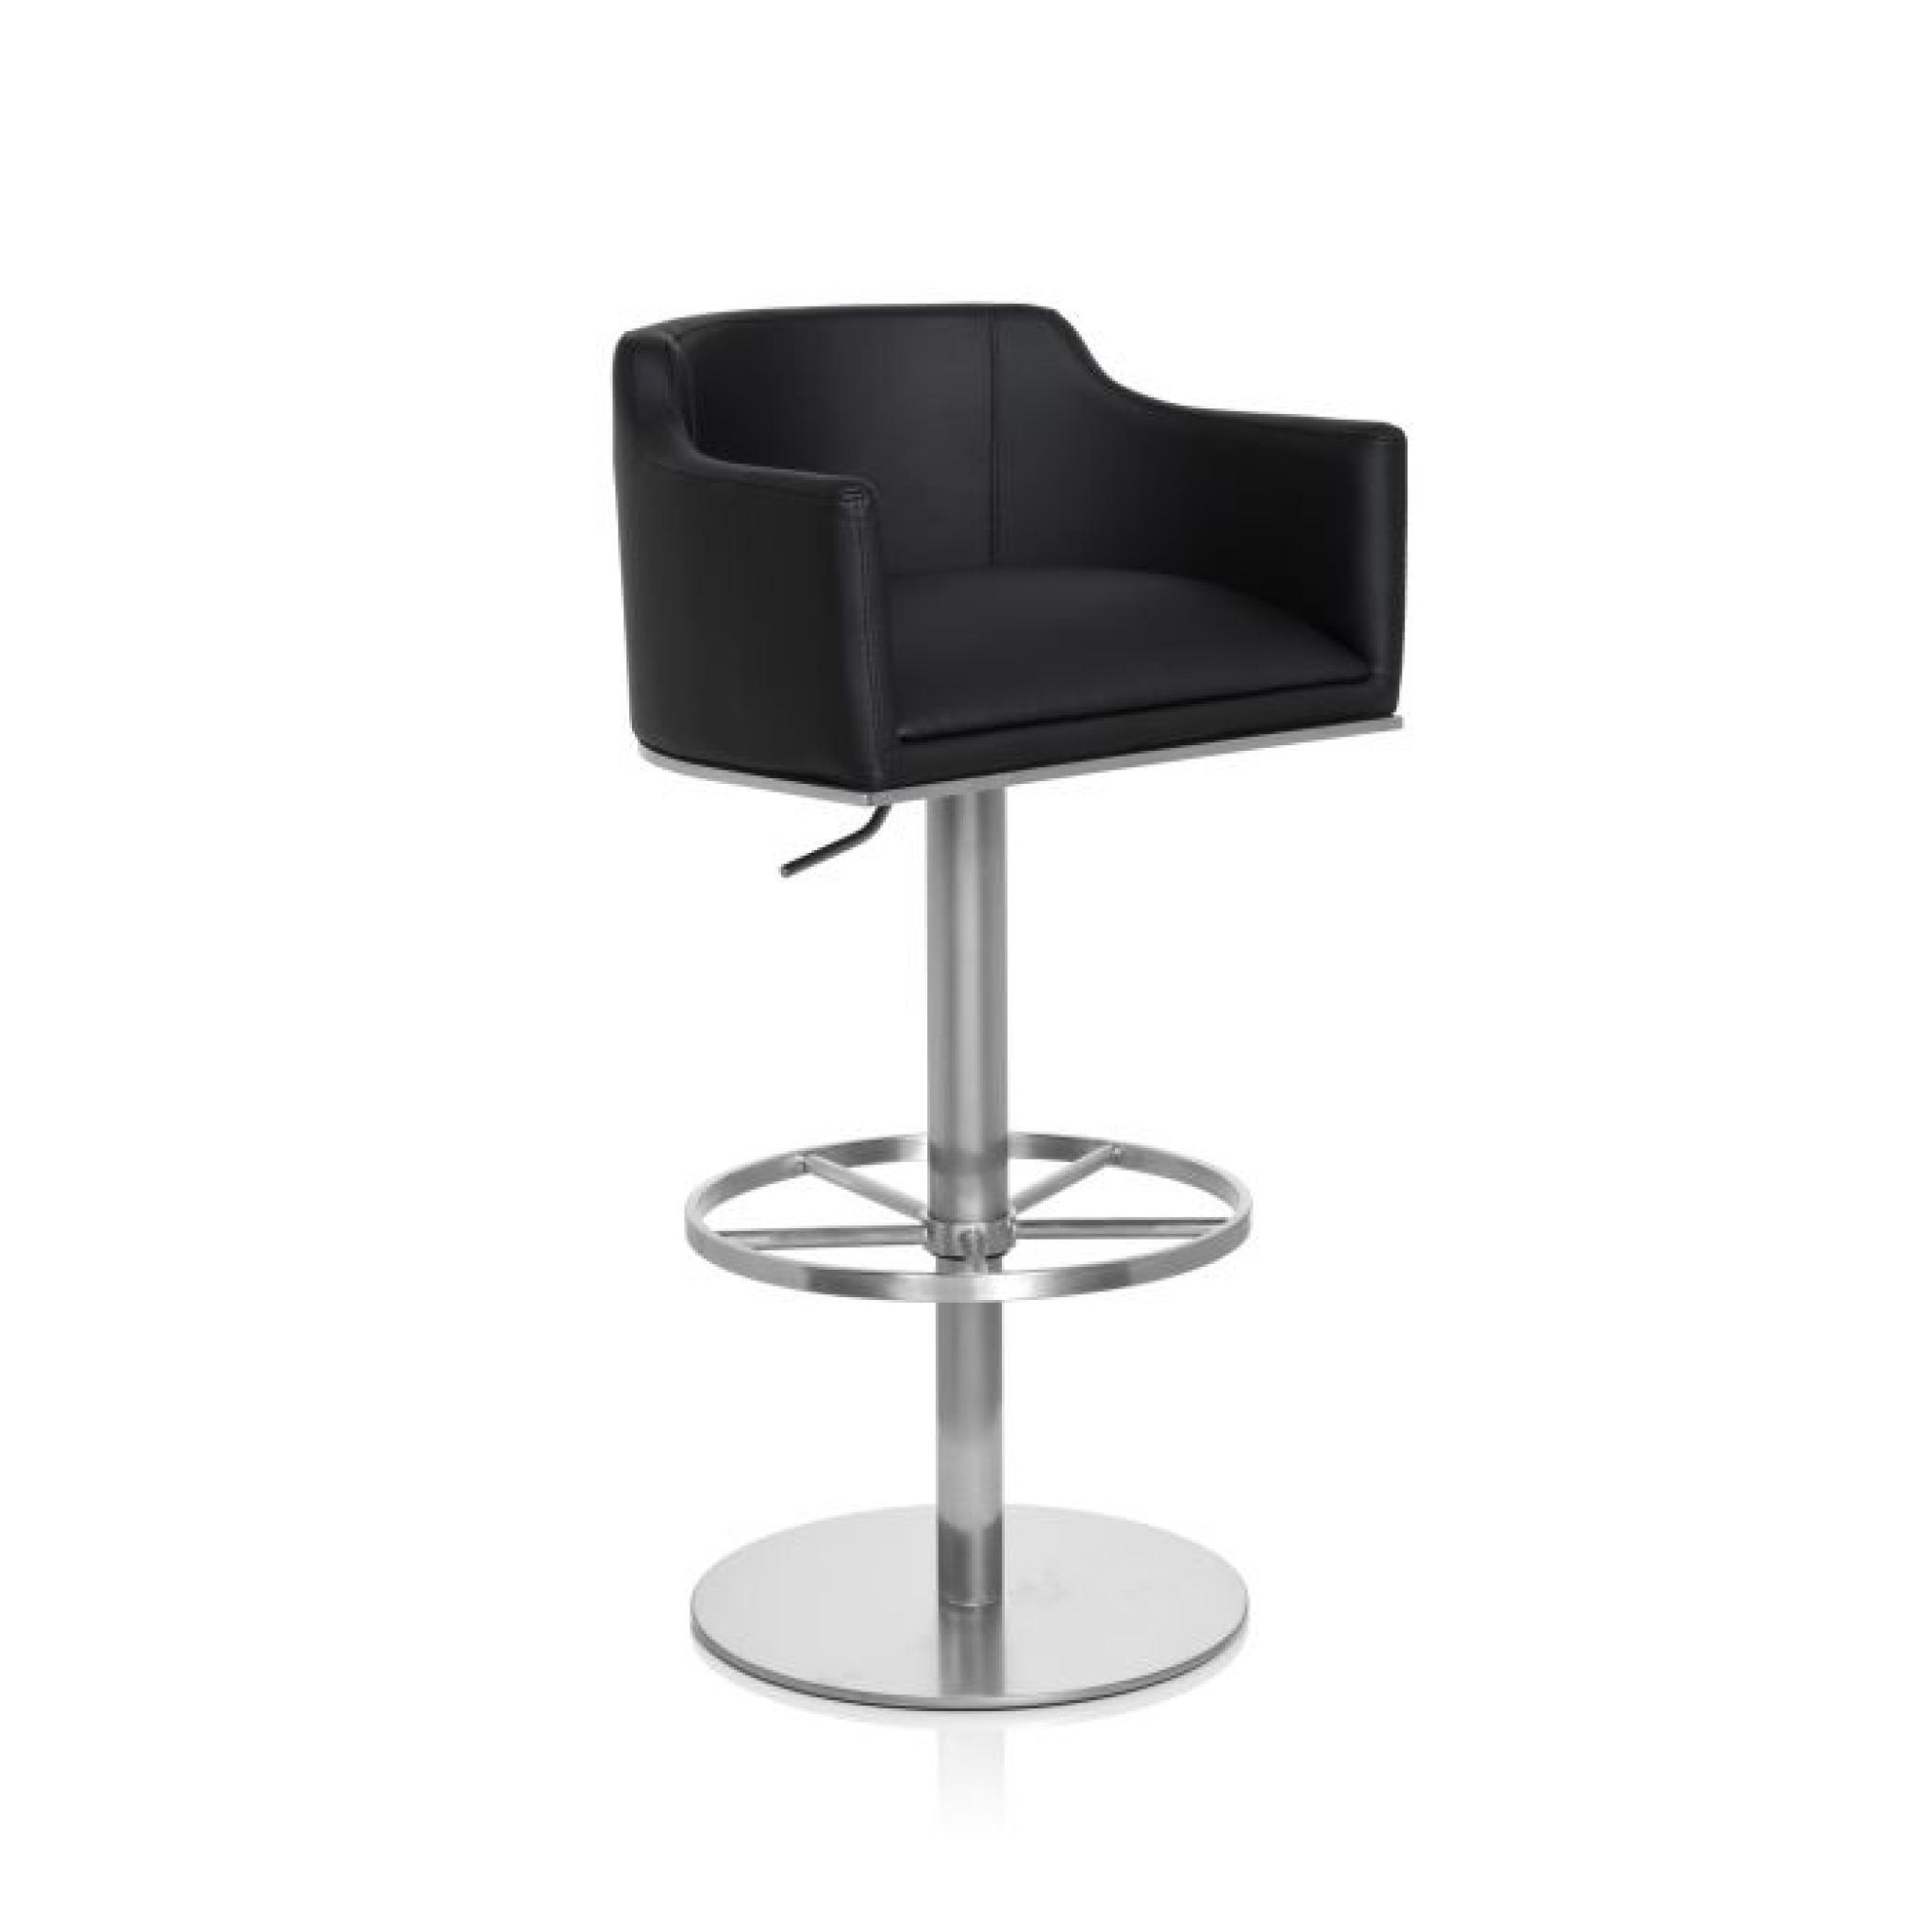 tabouret de bar feli en acier inox bross noir achat vente tabouret de bar pas cher. Black Bedroom Furniture Sets. Home Design Ideas